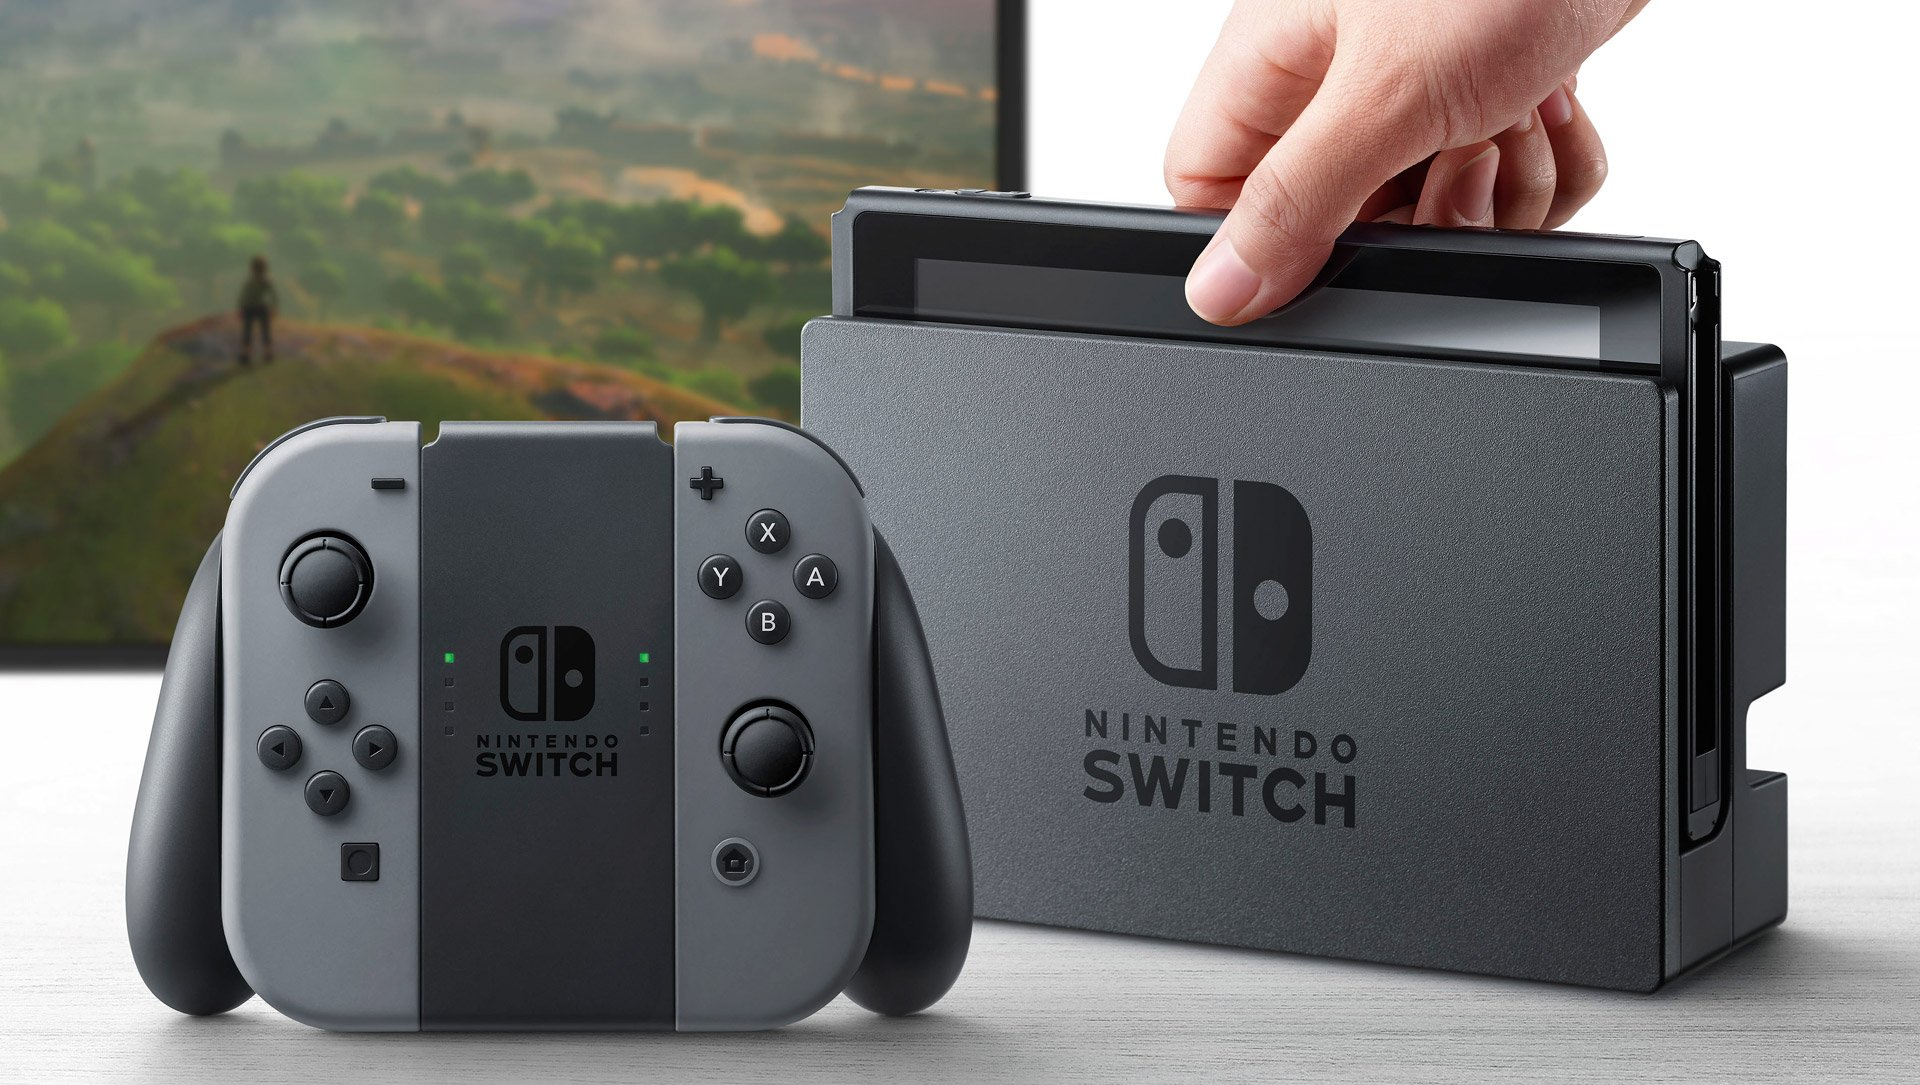 Nintendo Switch pre-orders go live on January 13 at @NintendoNYC! https://t.co/0bnVfFYE0N https://t.co/yfKQQD0TtW